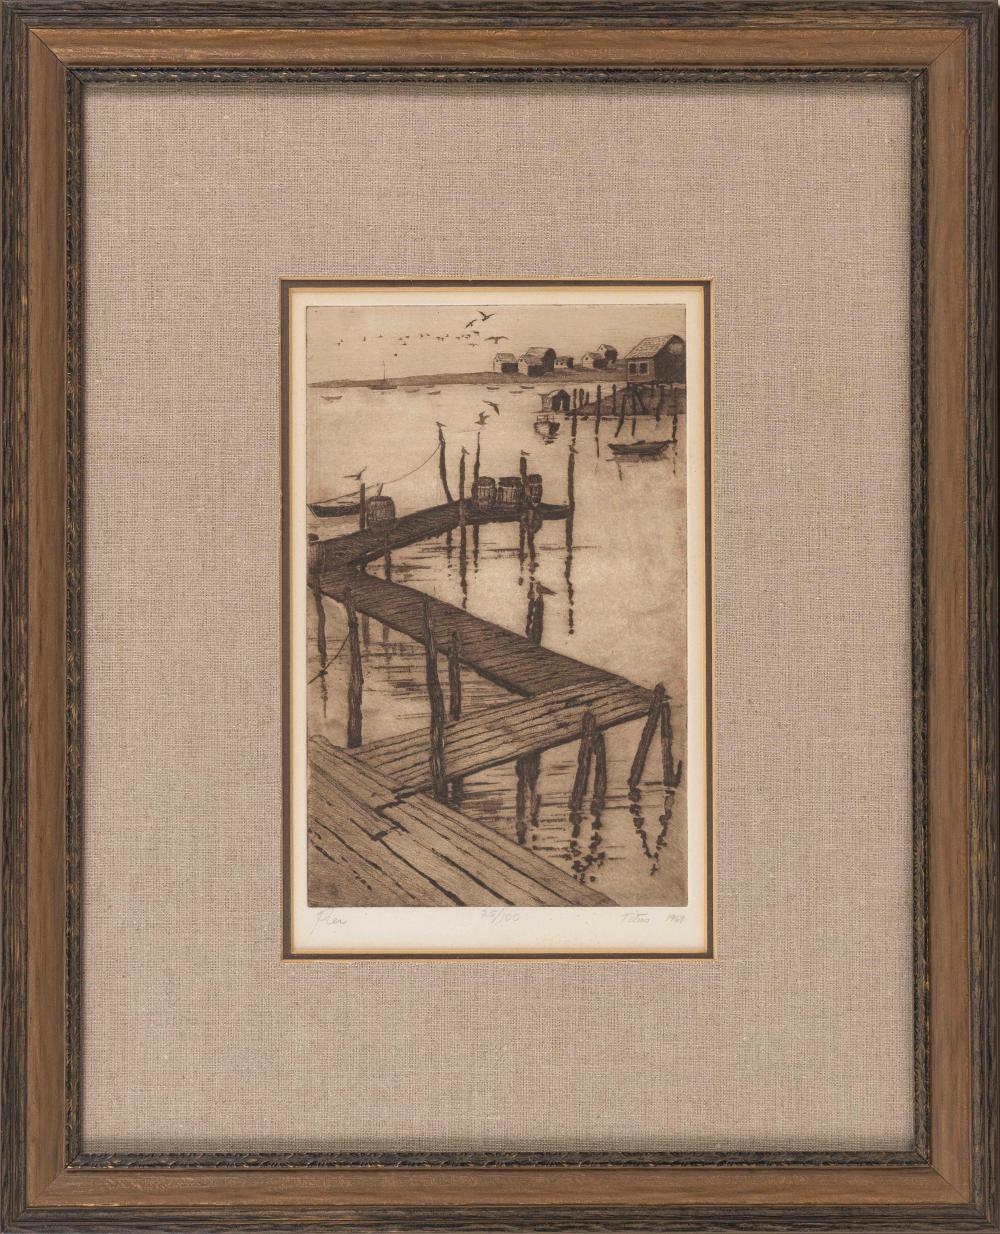 """SUSAN BOOTH TITUS (America, 1940-2016), """"Pier""""., Etching on paper, 12"""" x 7.5"""". Framed 22.5"""" x 18""""."""